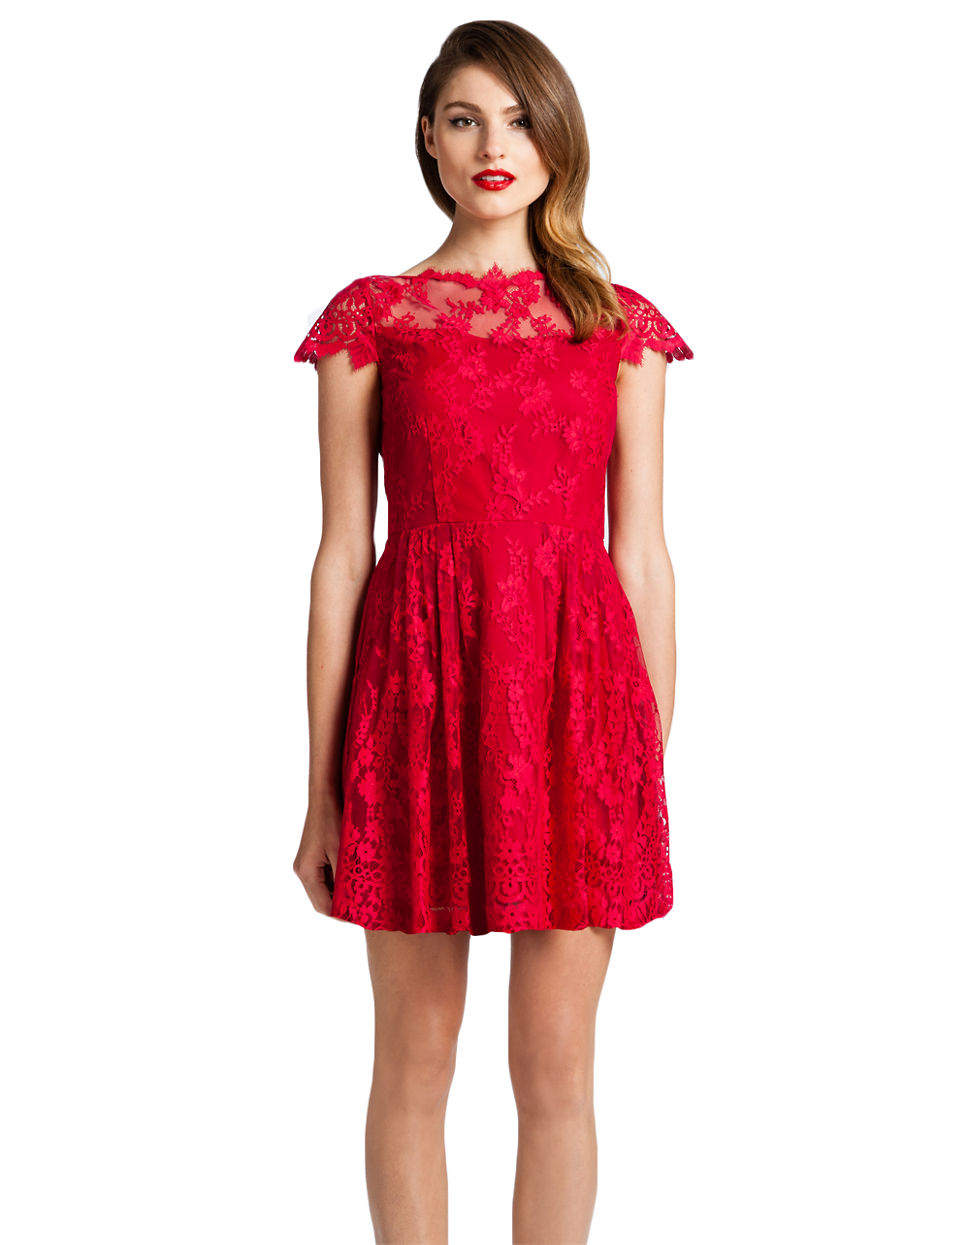 women 39 s apparel red dresses from lord taylor dresses